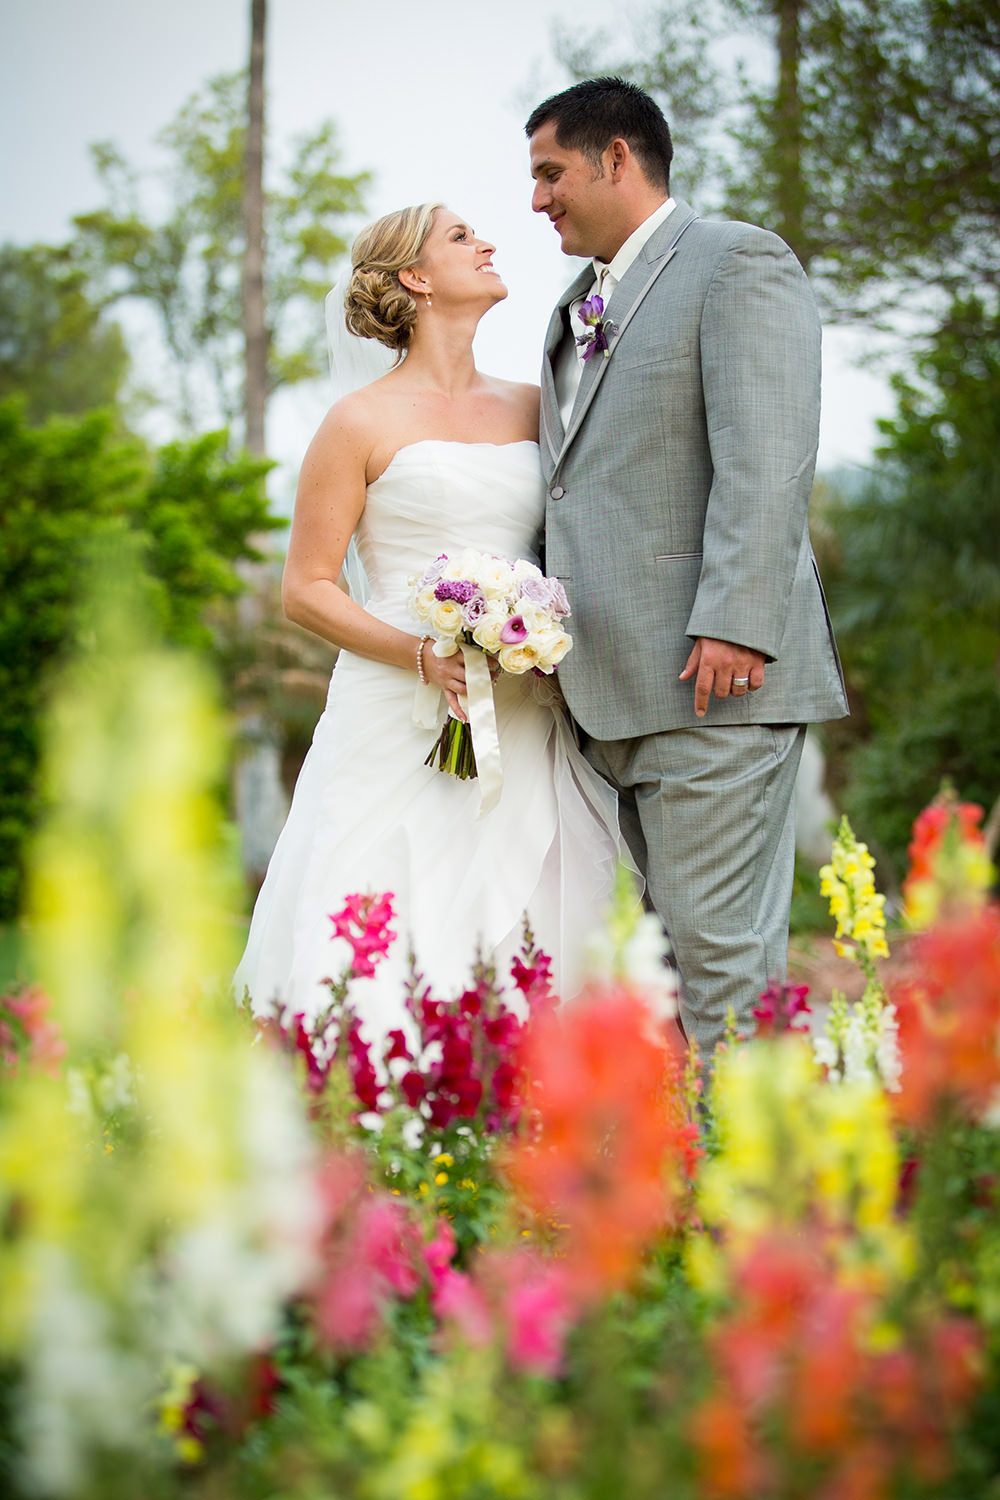 22SycuanResortWeddingPhotography